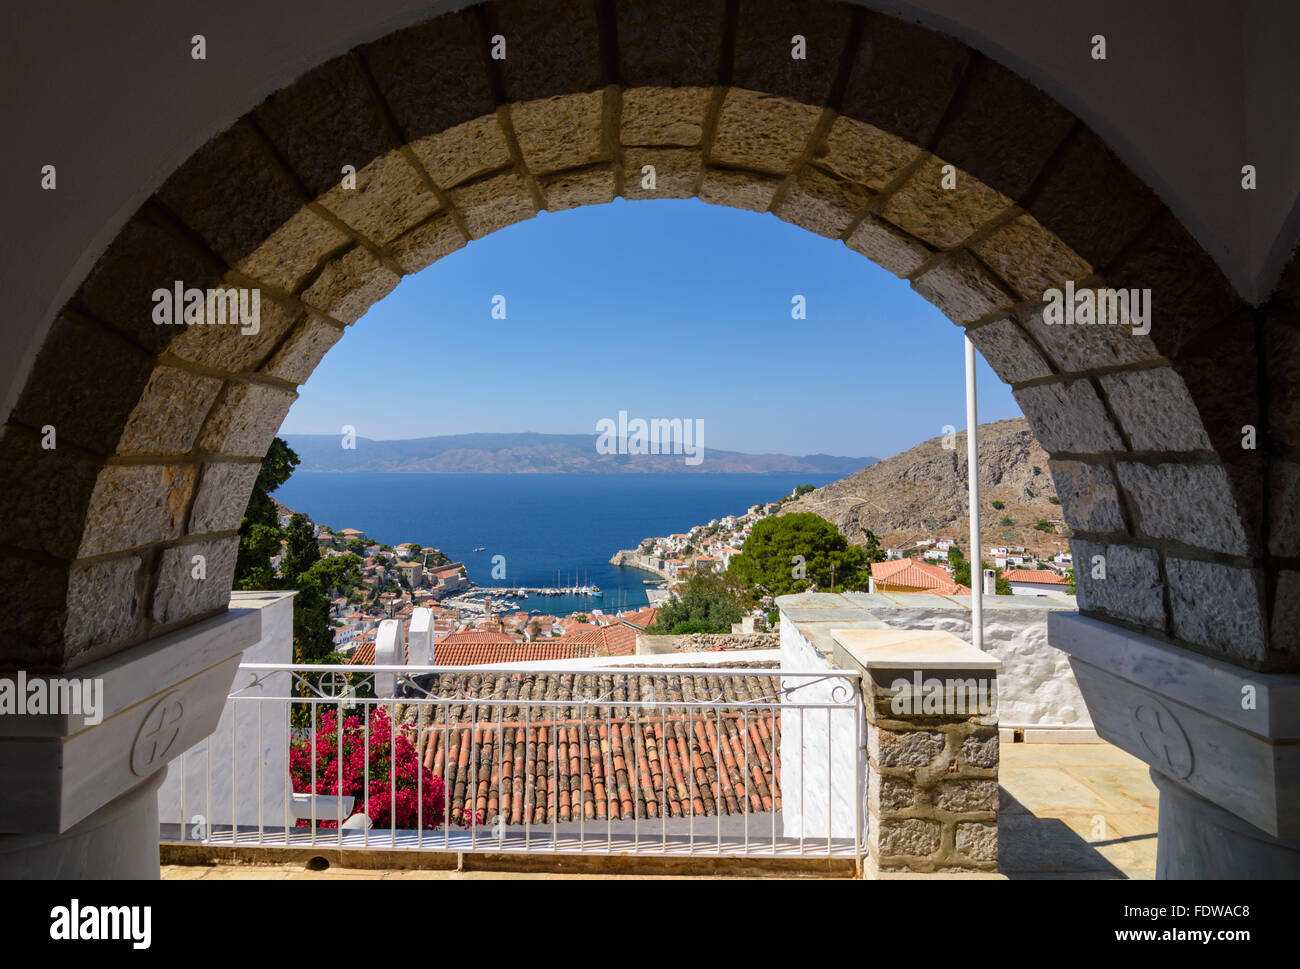 Views over the Gulf of Hydra from the Church of Saint Konstantinos of Hydra, Hydra Island, Greece - Stock Image